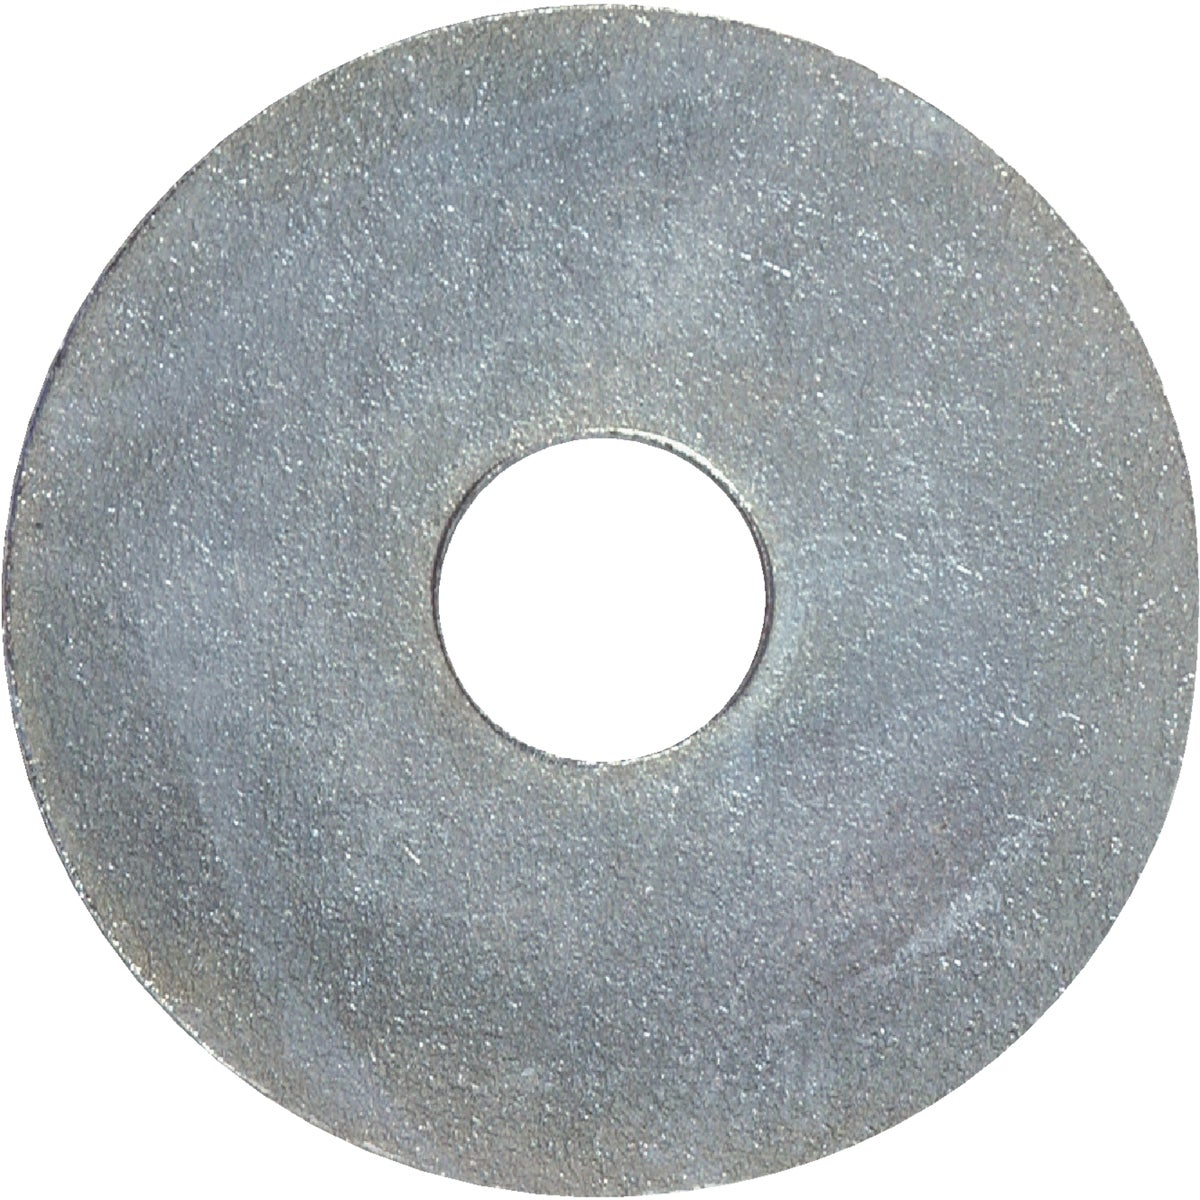 3/16X3/4 FENDER WASHER - 290004 by Hillman Fastener